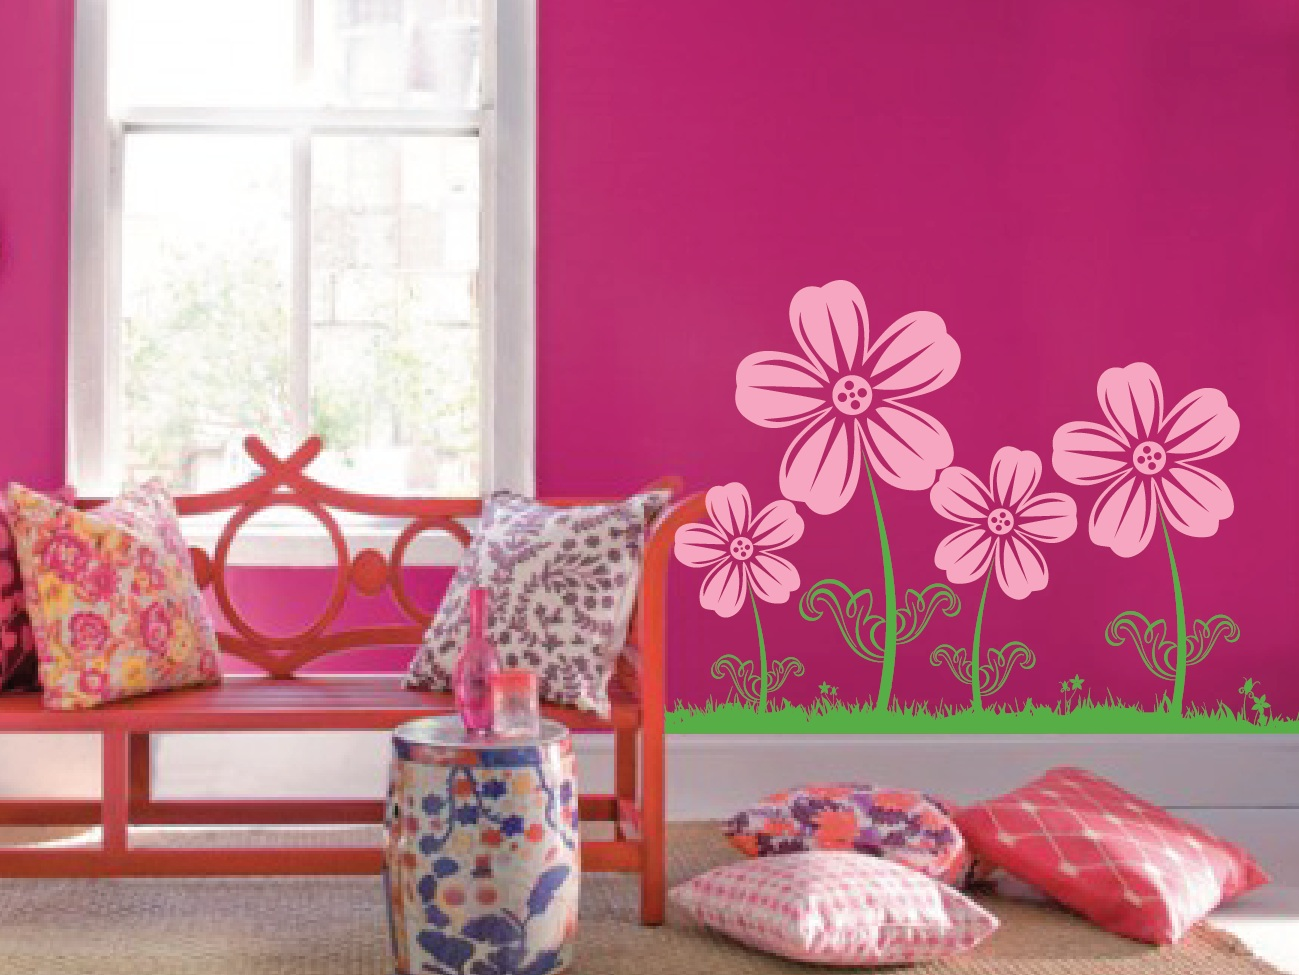 Flower Floral Wall Decal For Girls Room With